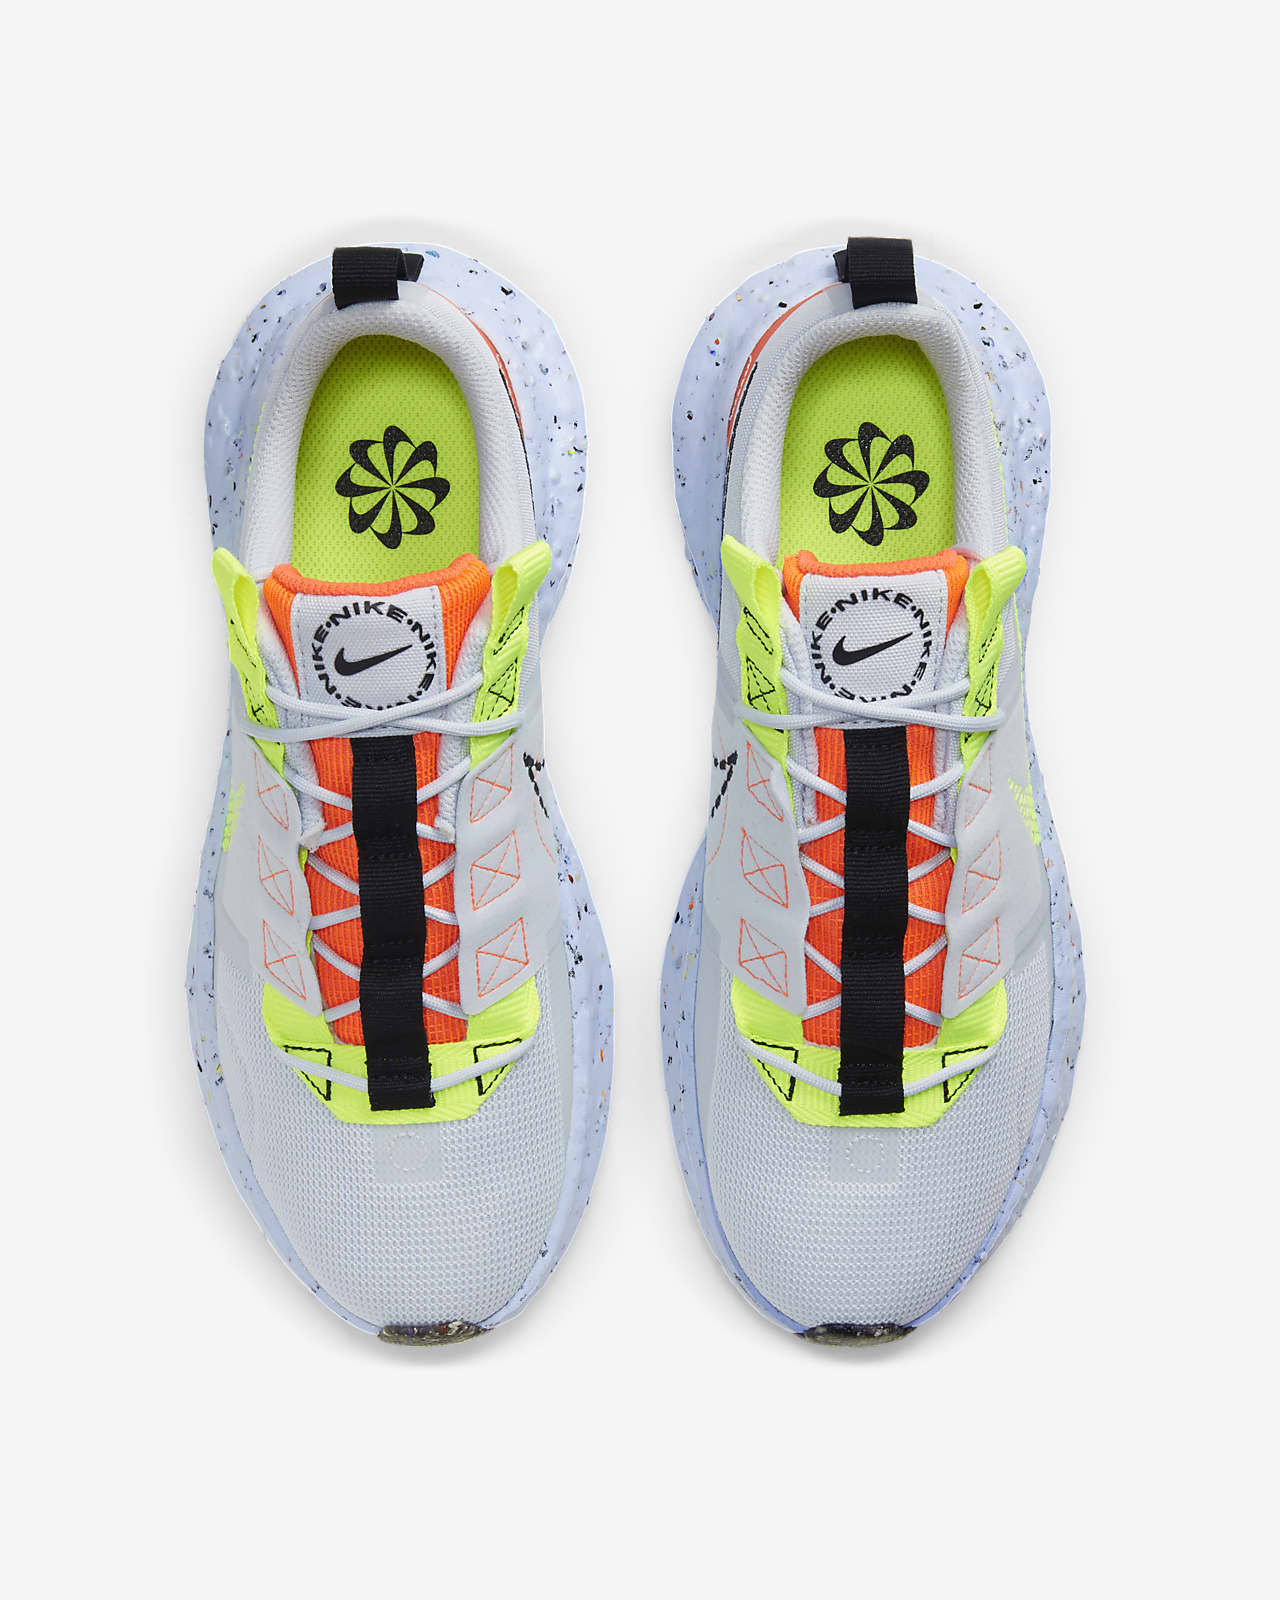 Chaussure Nike Crater Impact pour Femme